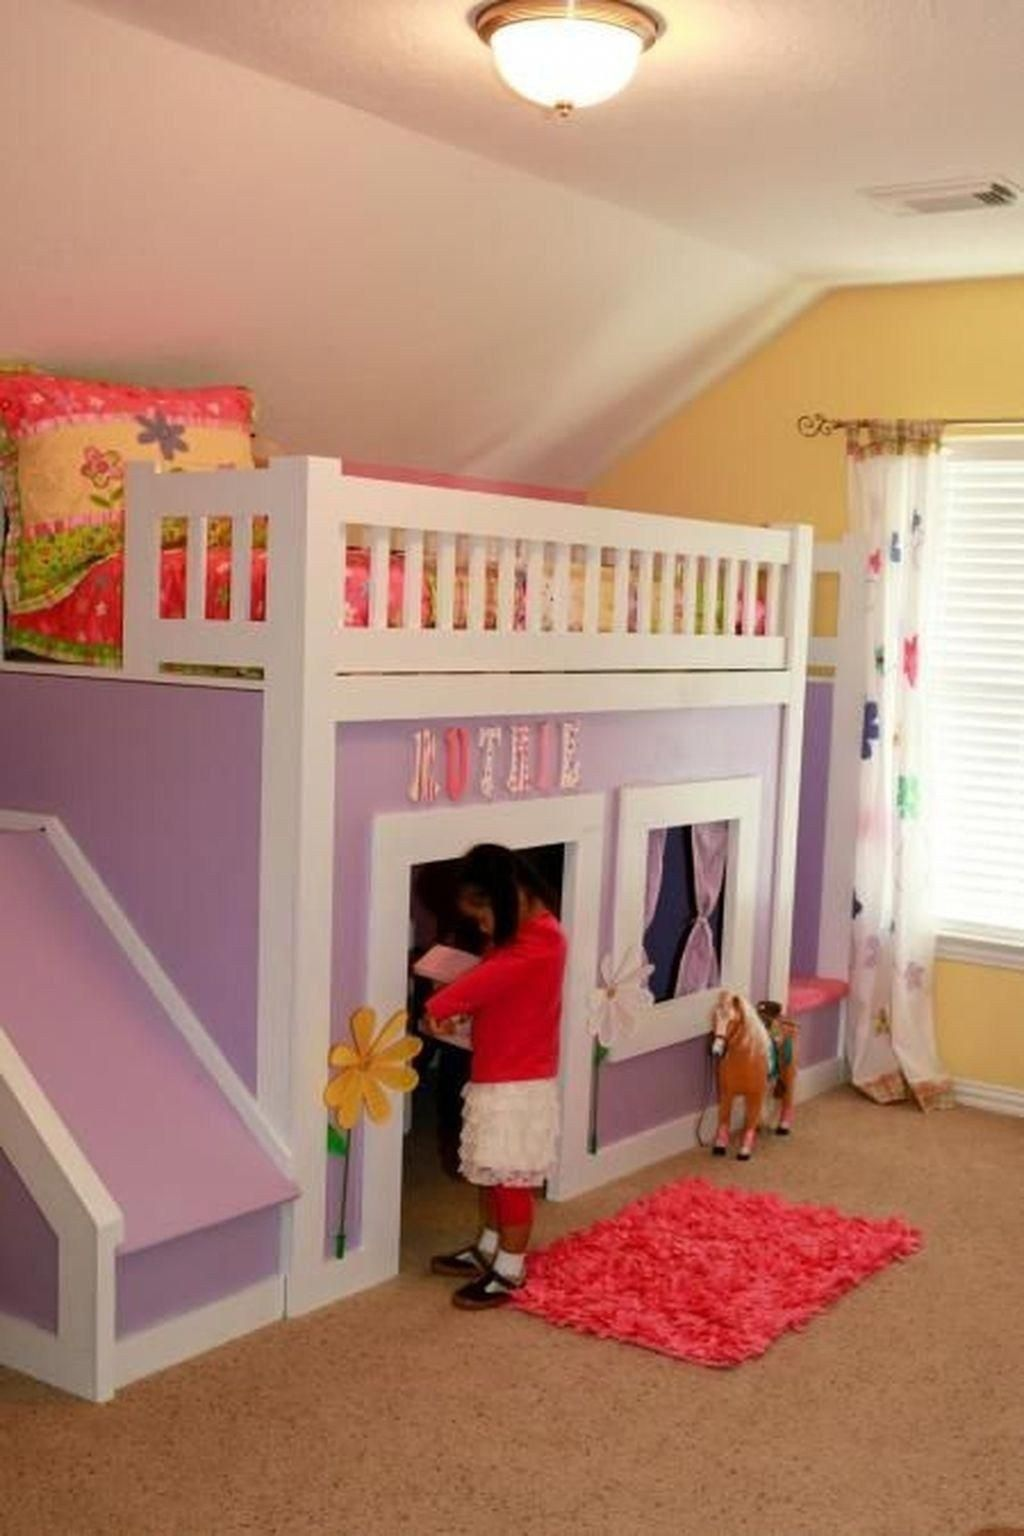 22 Exclusive Blueprints For Bunkbedsforkids Bunk Bed With Slide Kid Beds Bunk Beds With Stairs